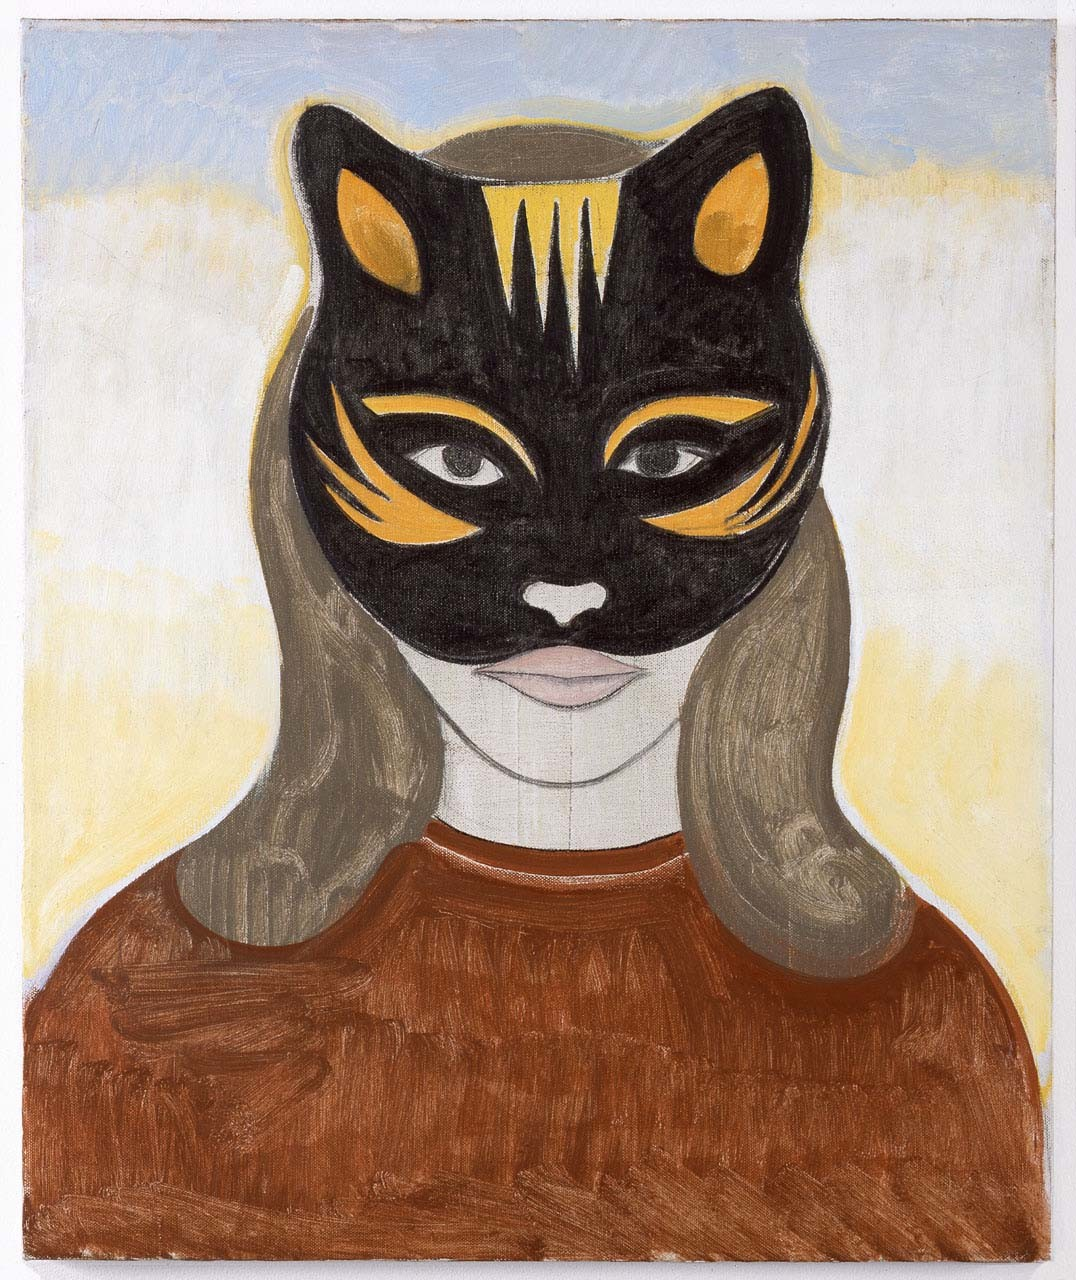 "<div class=""artwork_caption""><p>Woman with Cat mask, 2010</p><p> </p></div>"